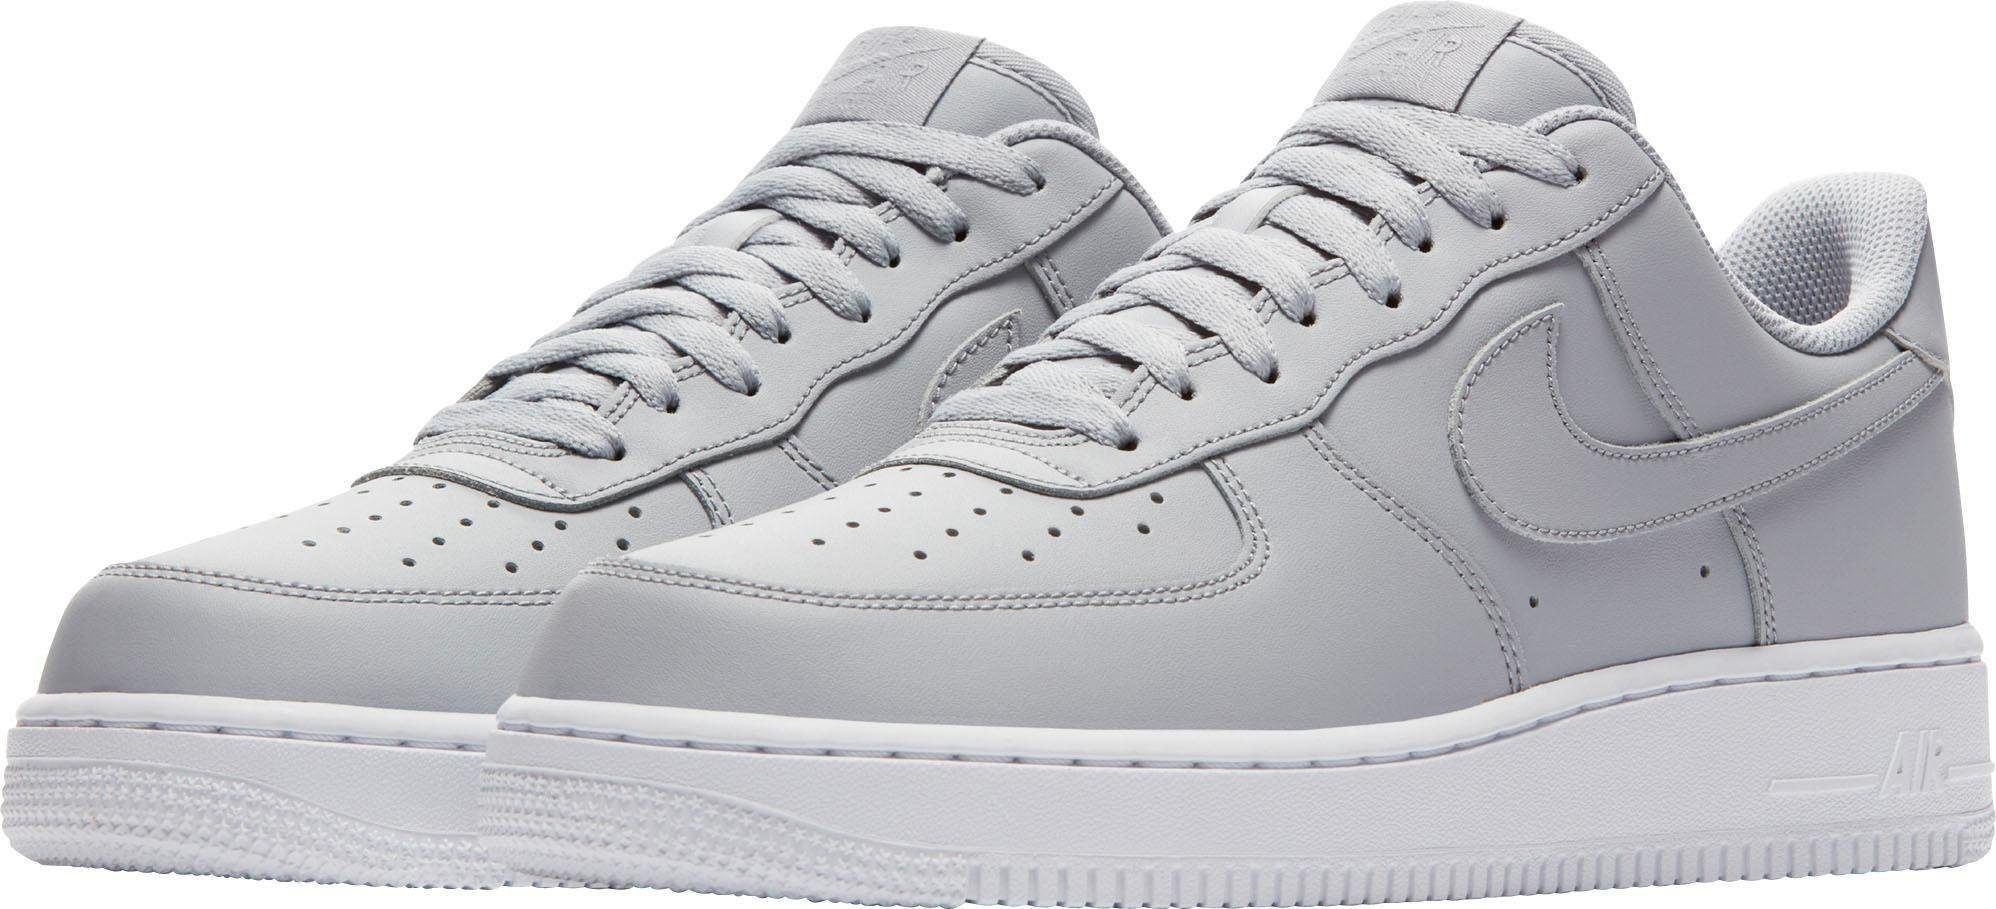 Nike Sportswear »Air Force 1 '07 Low« Sneaker | OTTO